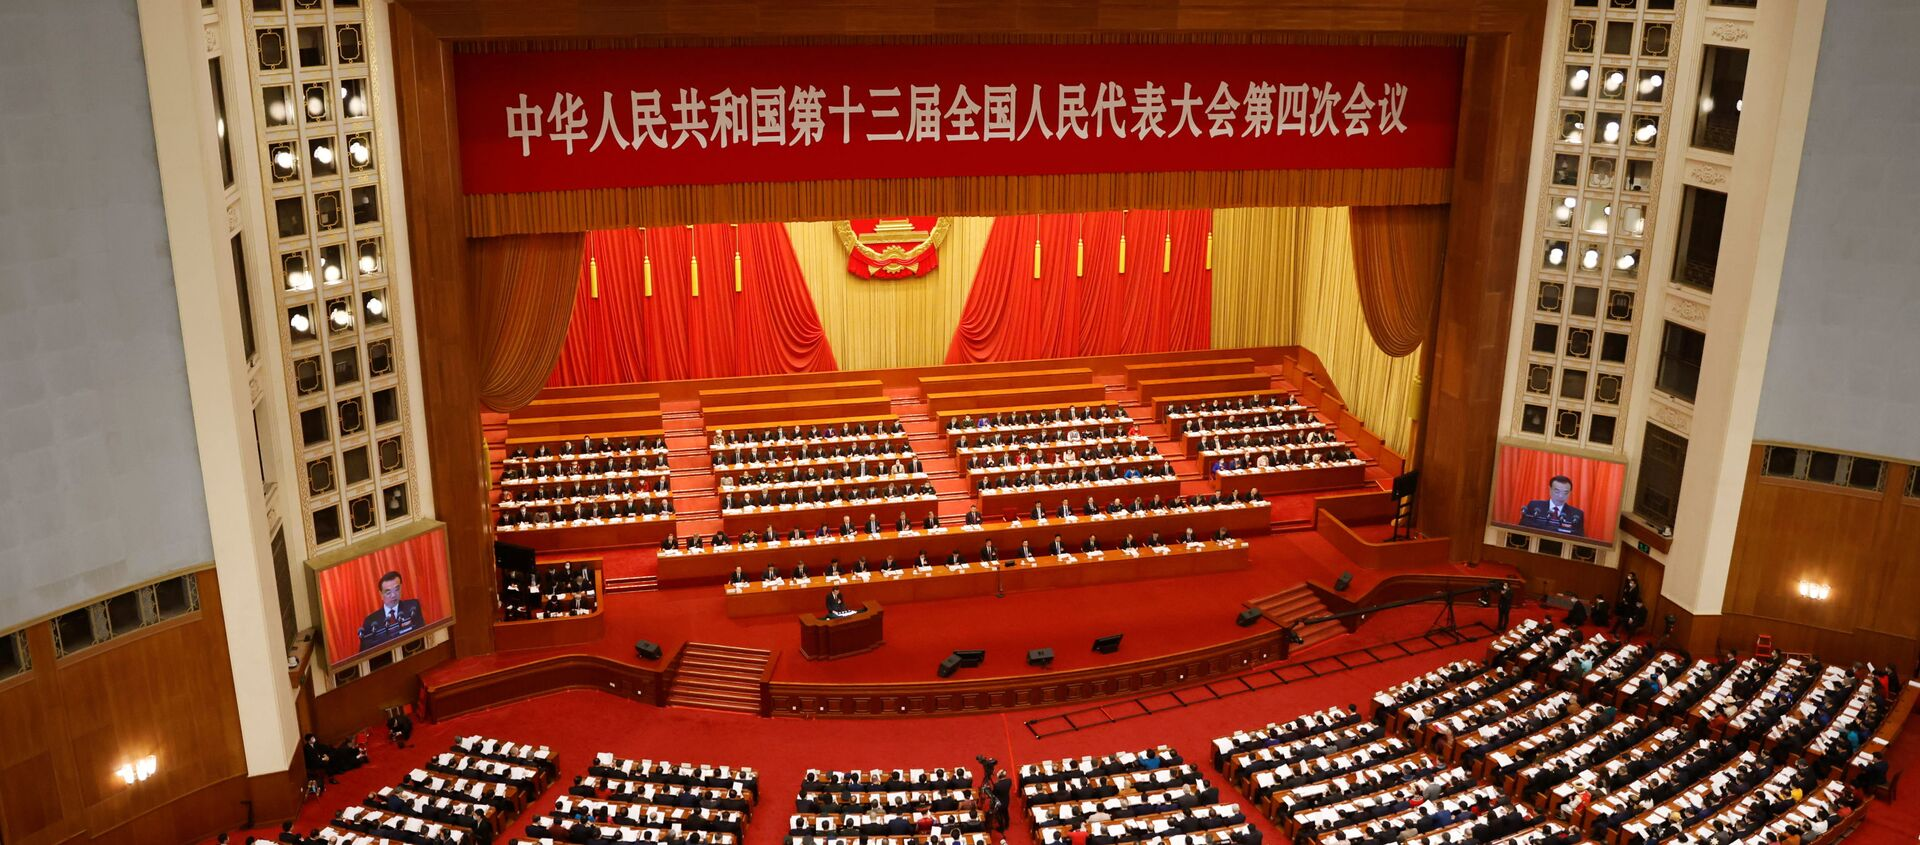 Chinese Premier Li Keqiang speaks at the opening session of the National People's Congress (NPC) at the Great Hall of the People in Beijing, China March 5, 2021. - Sputnik International, 1920, 13.08.2021